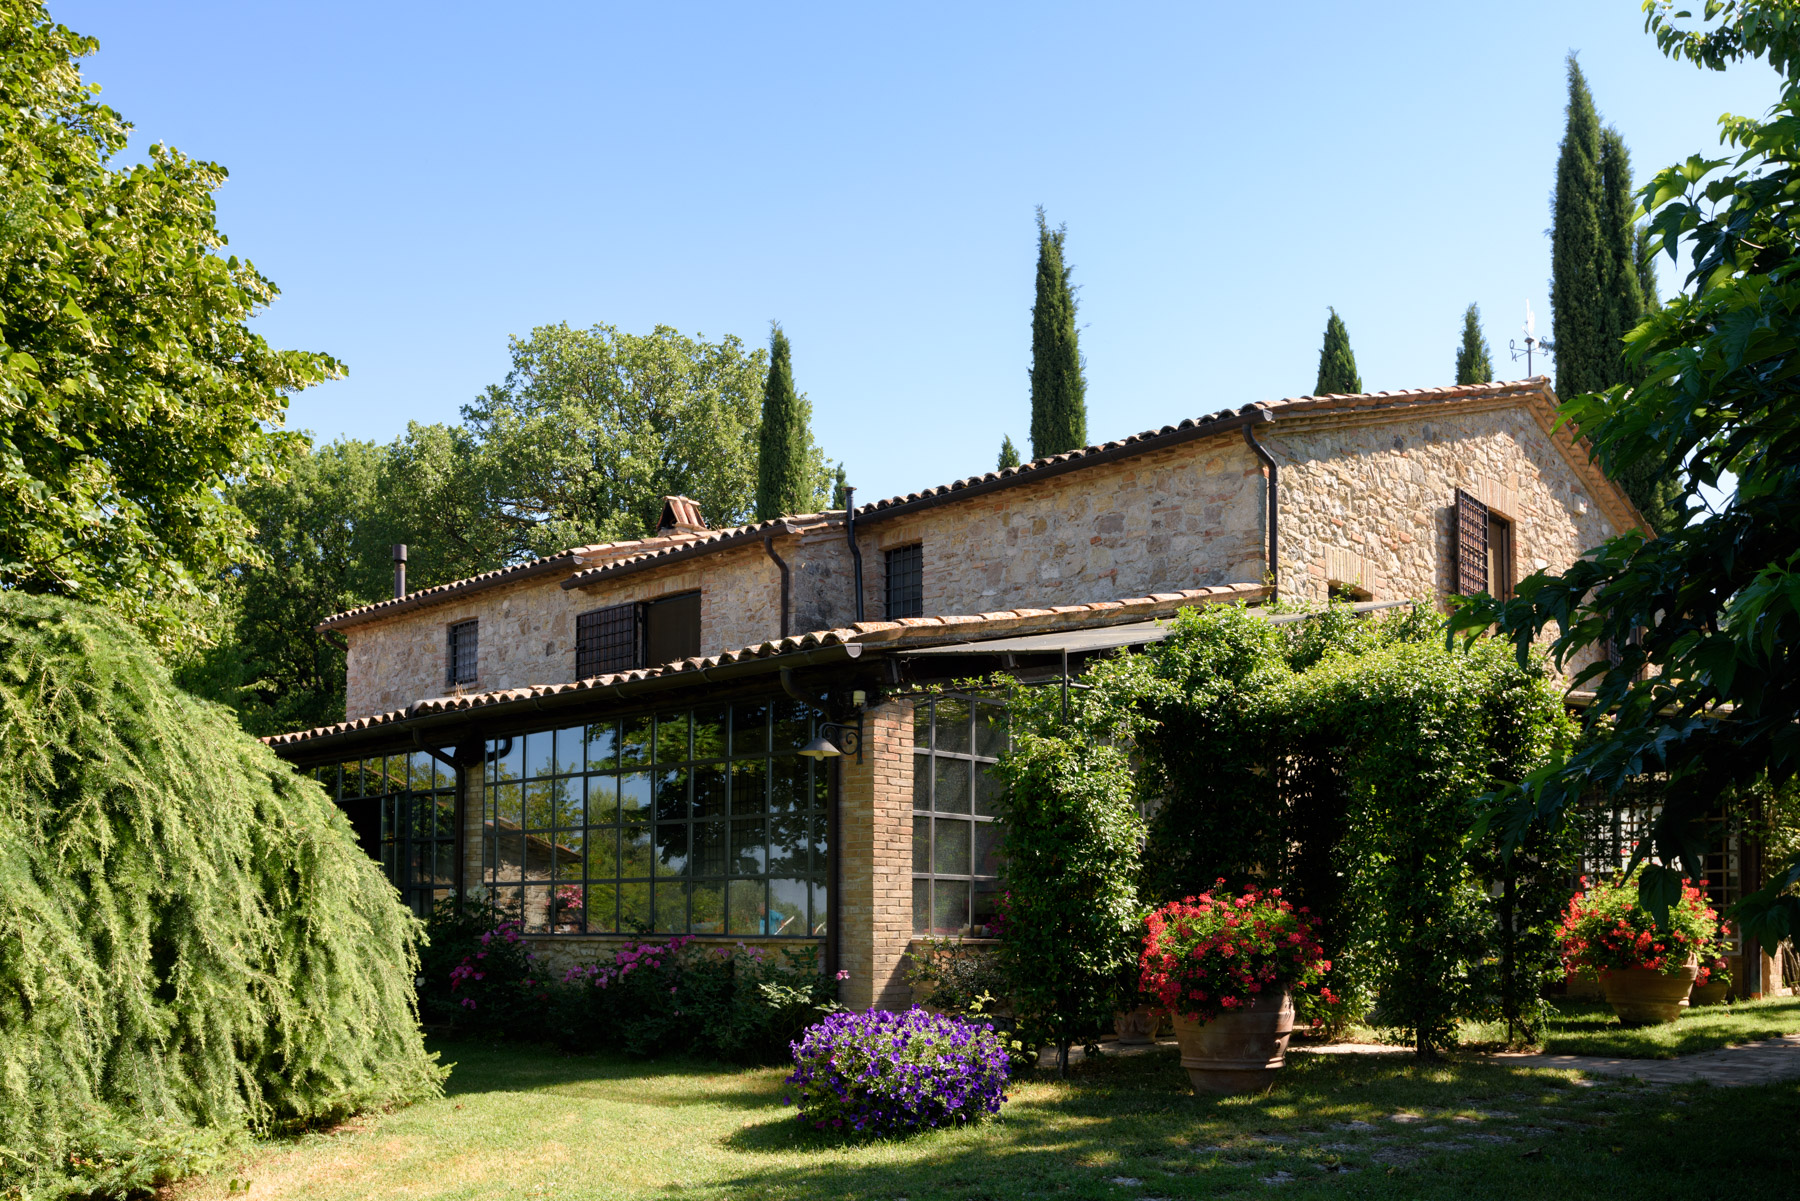 Single Family Home for Sale at Charming house overlooking the town of Todi Todi, Italy